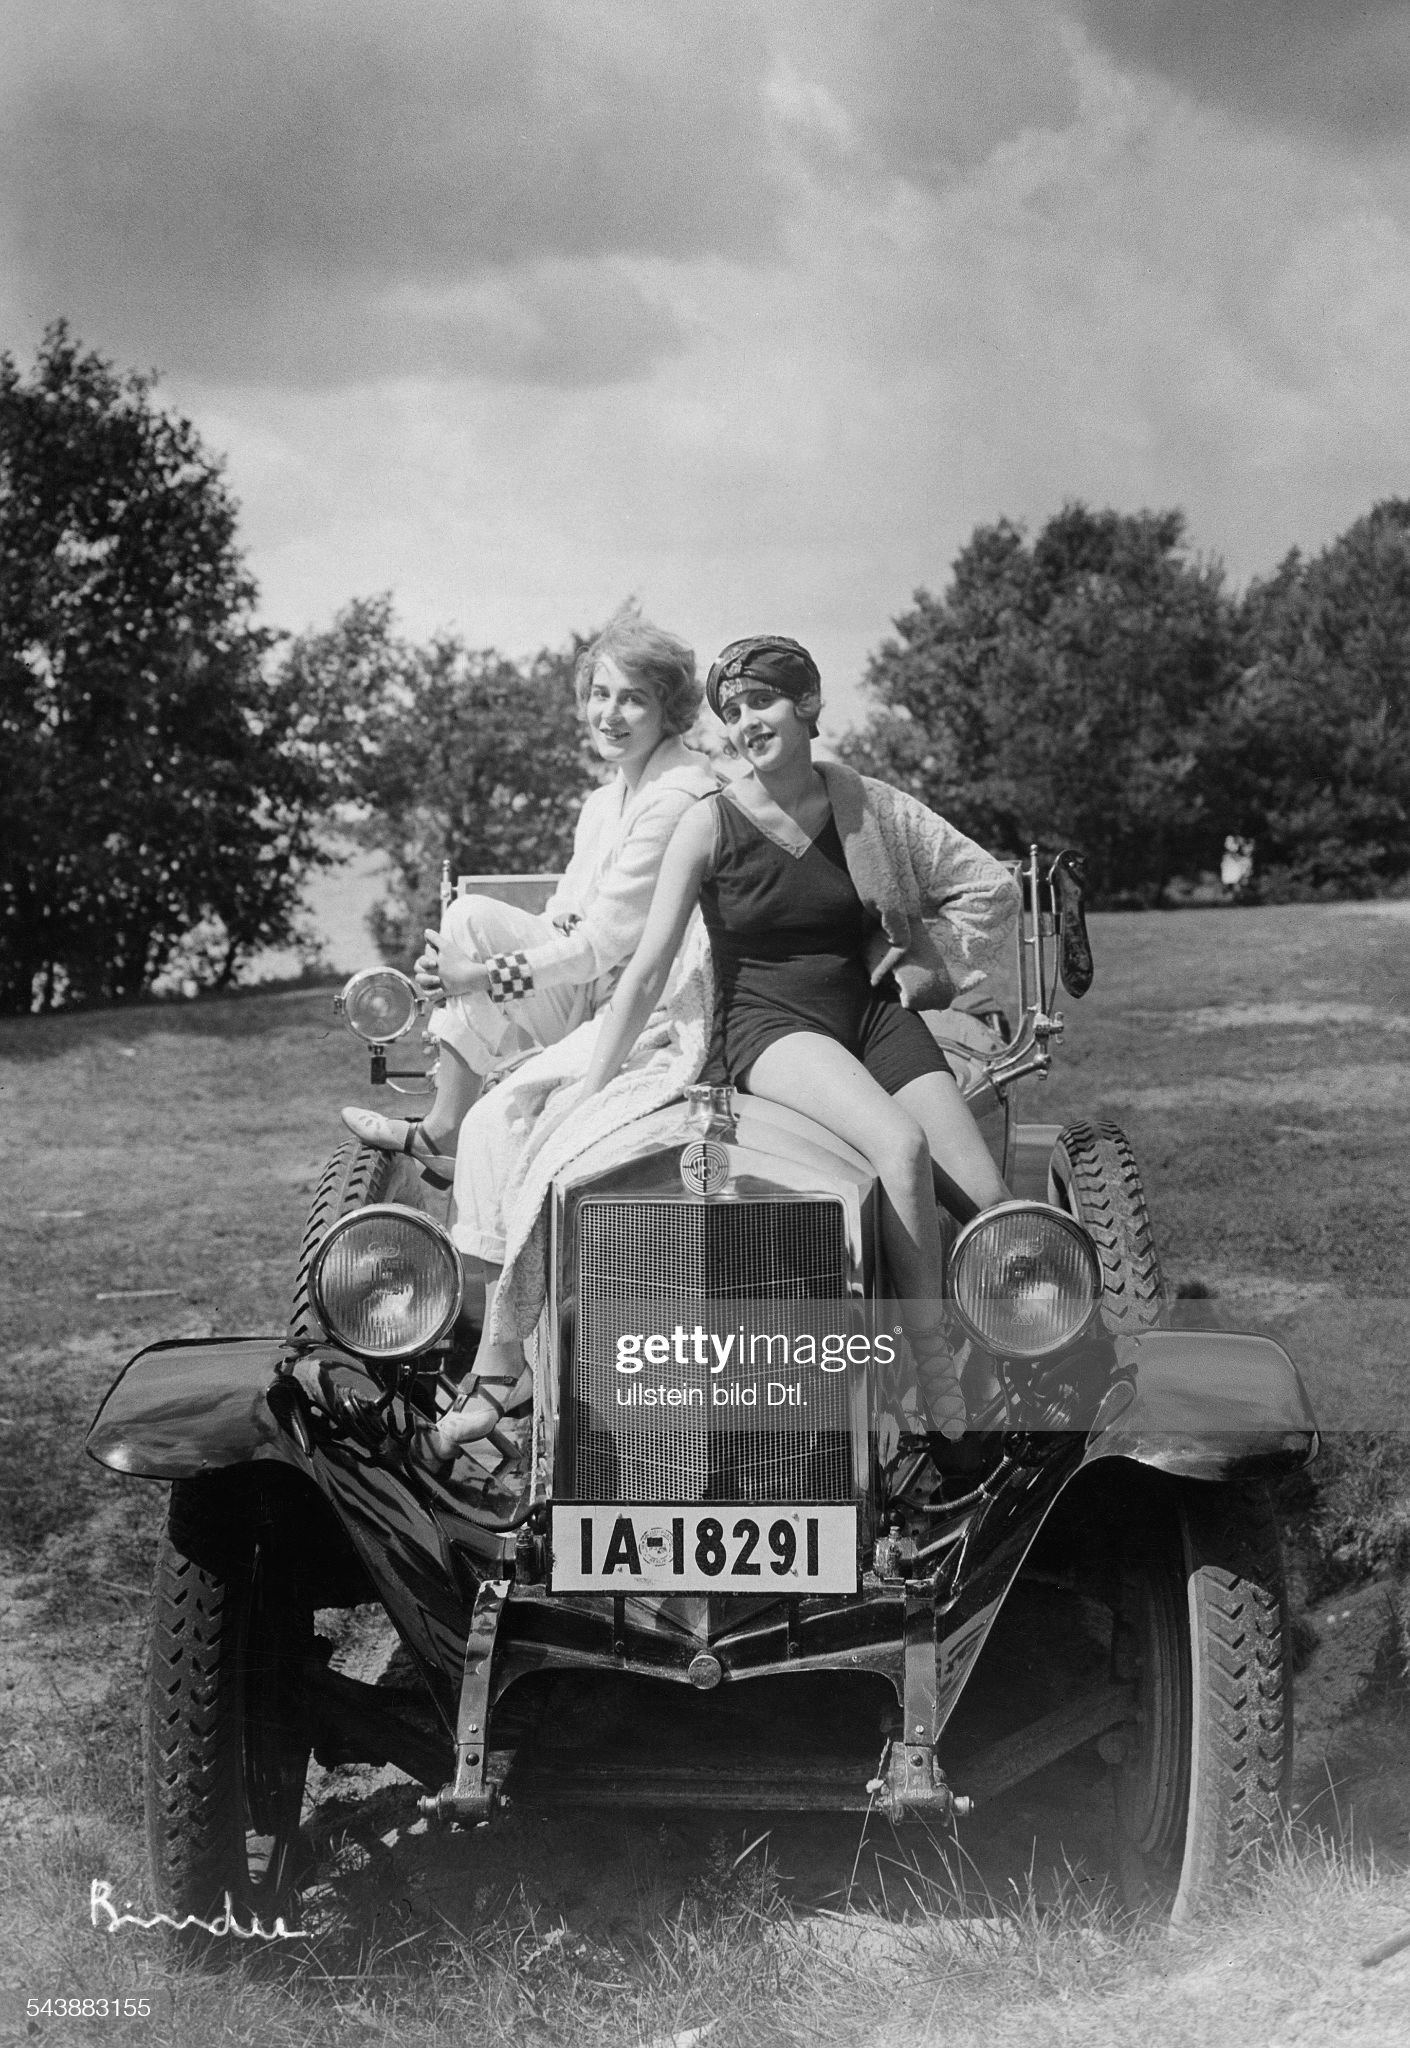 Pinajeff, Elisabeth - Actress, Russia*17.04.1900-1995+- sitting with a friend (l.) on the bonnet of a car - Photographer: Atelier Binder- 1930Vintage property of ullstein bild : News Photo